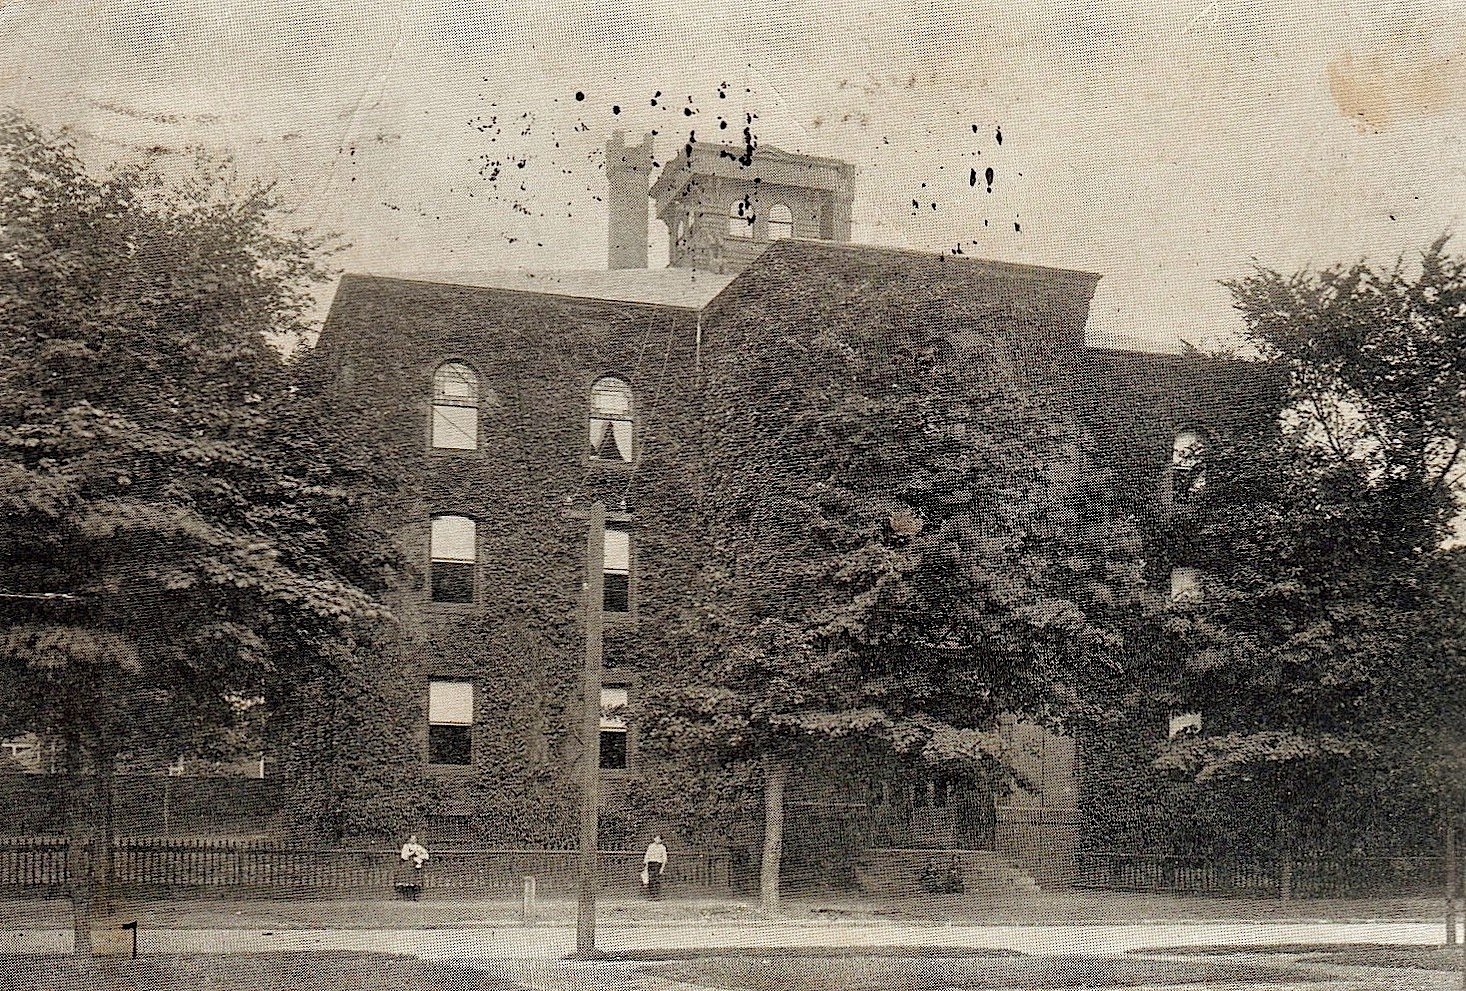 history of the city of holyoke The city of holyoke assessor is responsible for appraising real estate and assessing a property tax on properties located in city of holyoke, massachusetts you can contact the city of holyoke assessor for:.